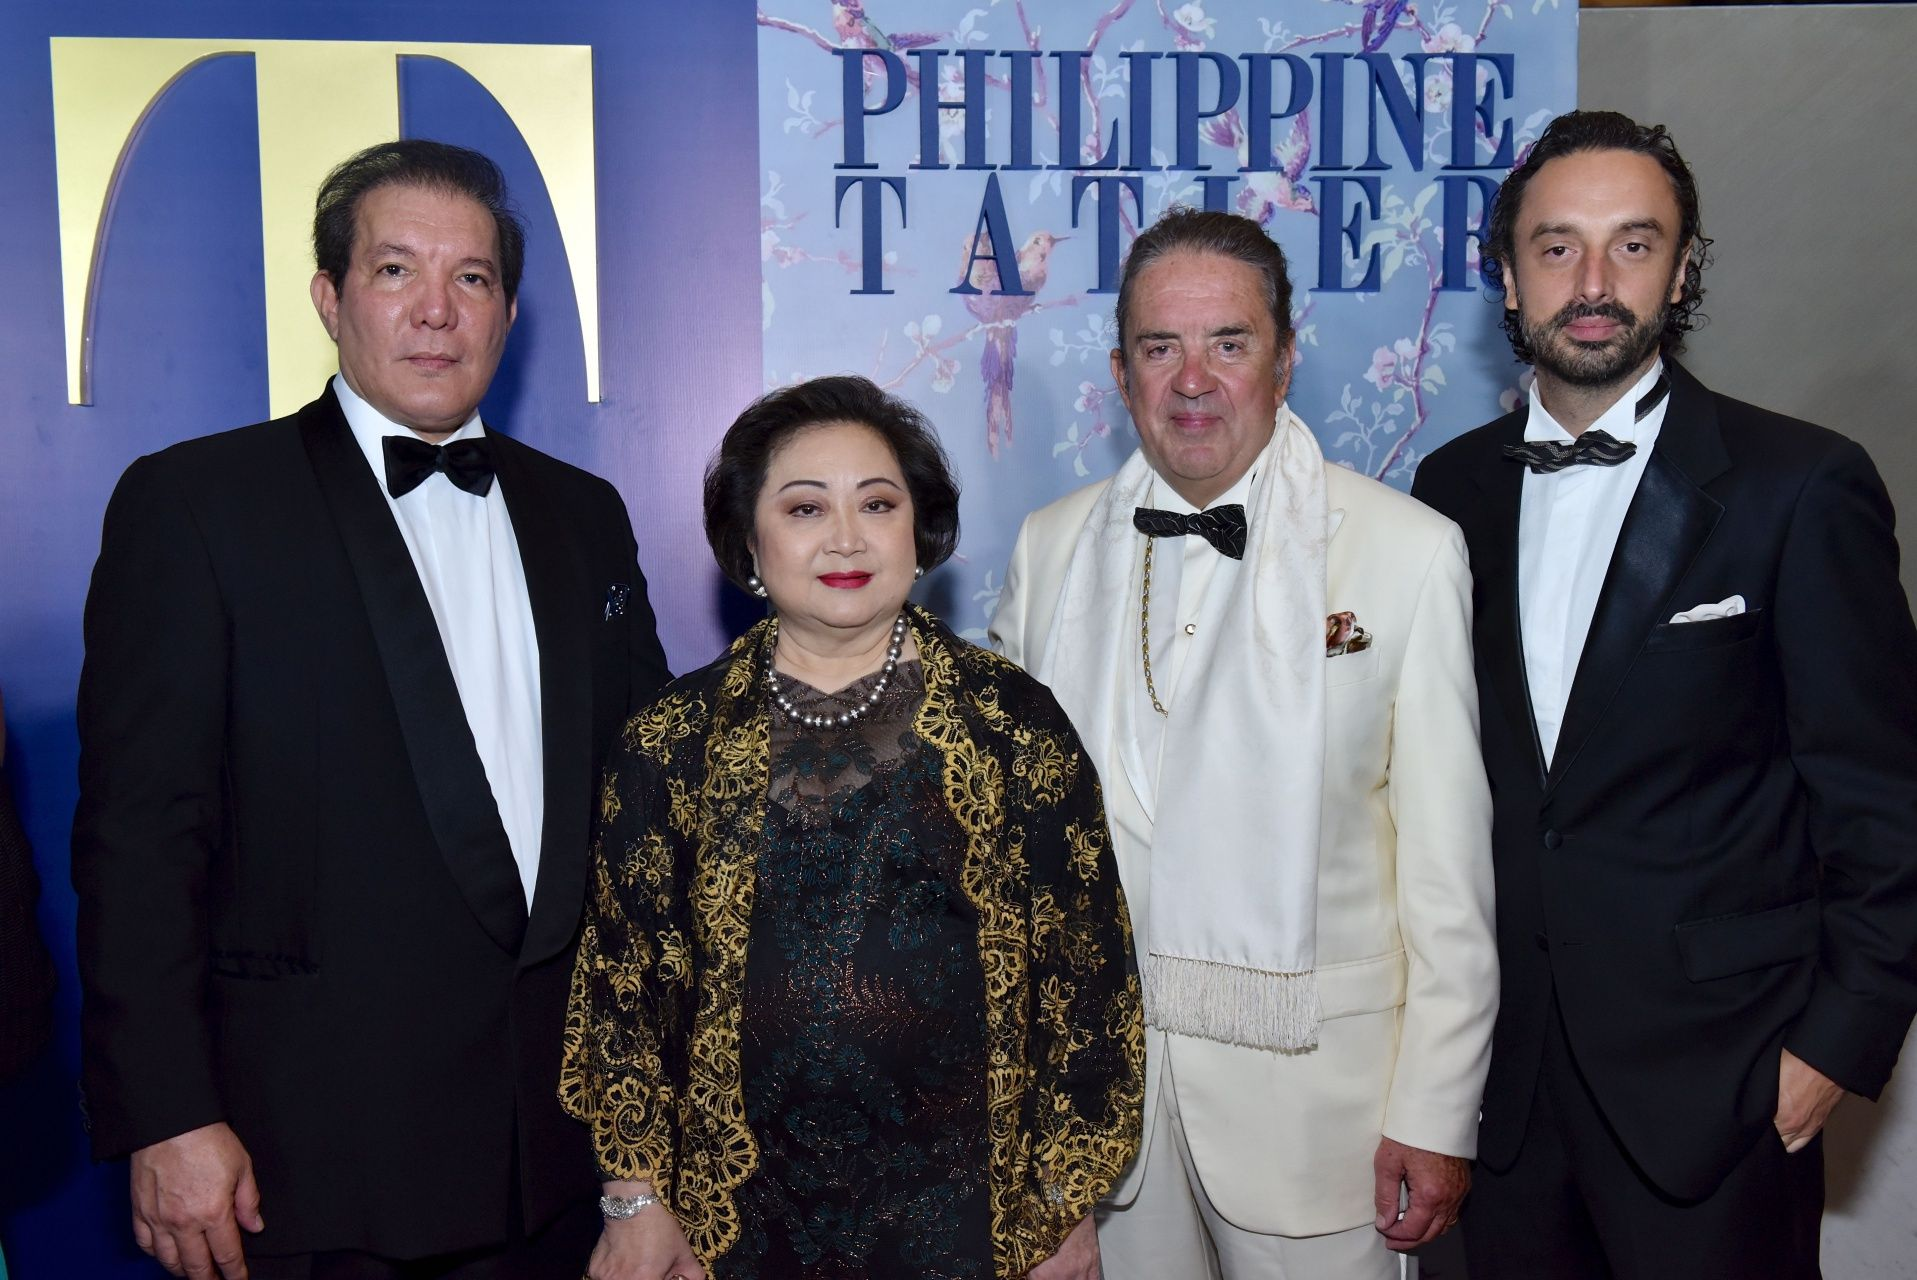 Patrick Jacinto, Nedy Tantoco, Philippe and Alexandre Chariol